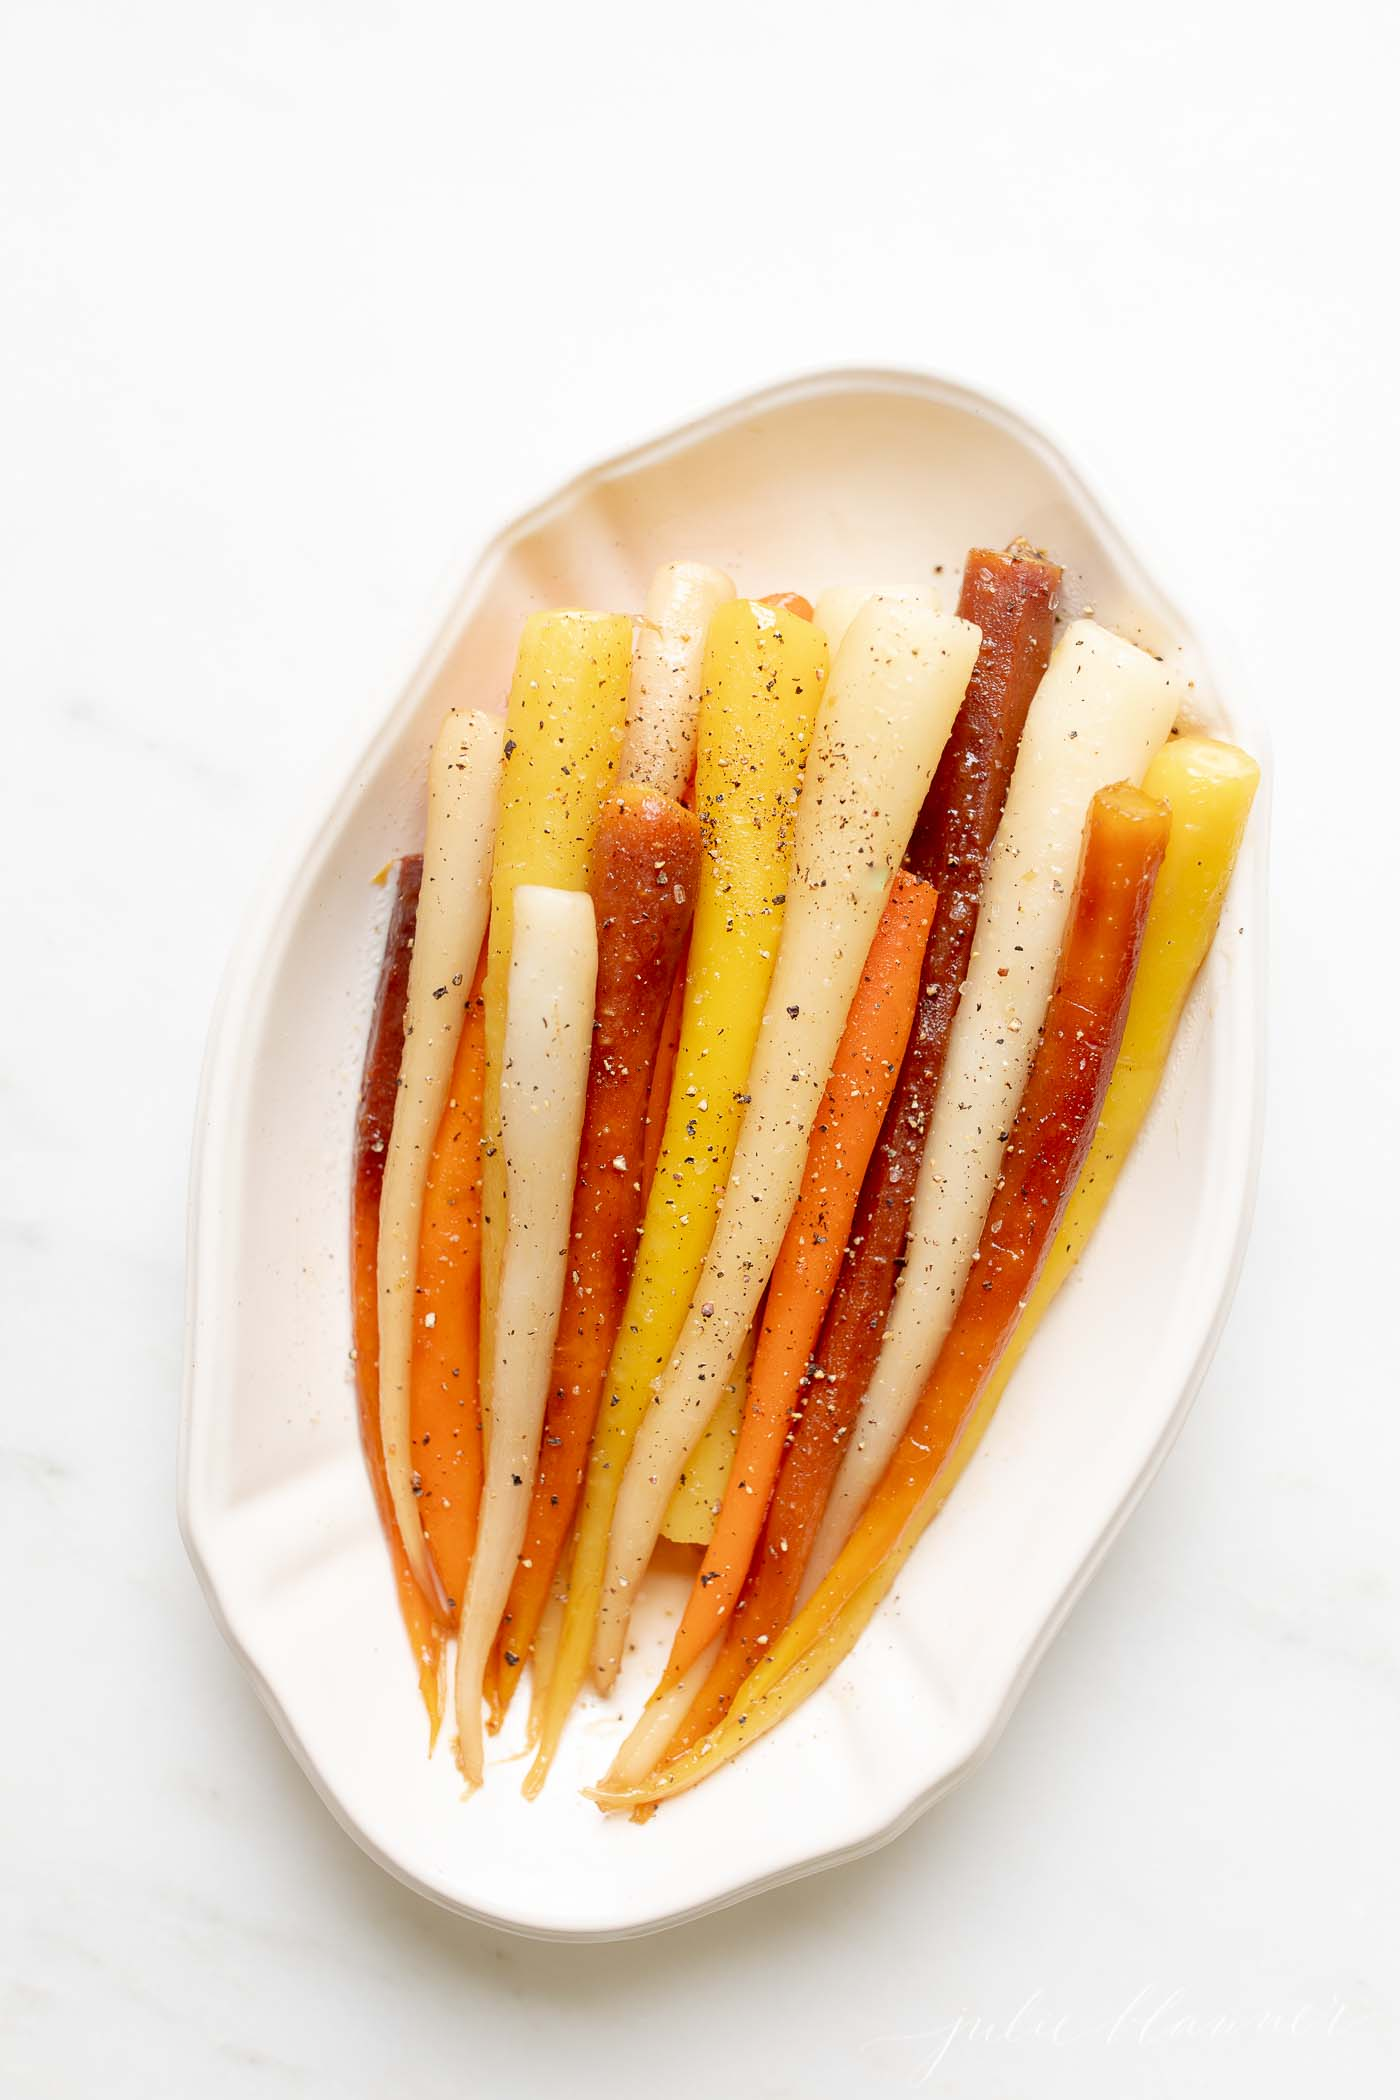 heirloom carrots in a serving dish